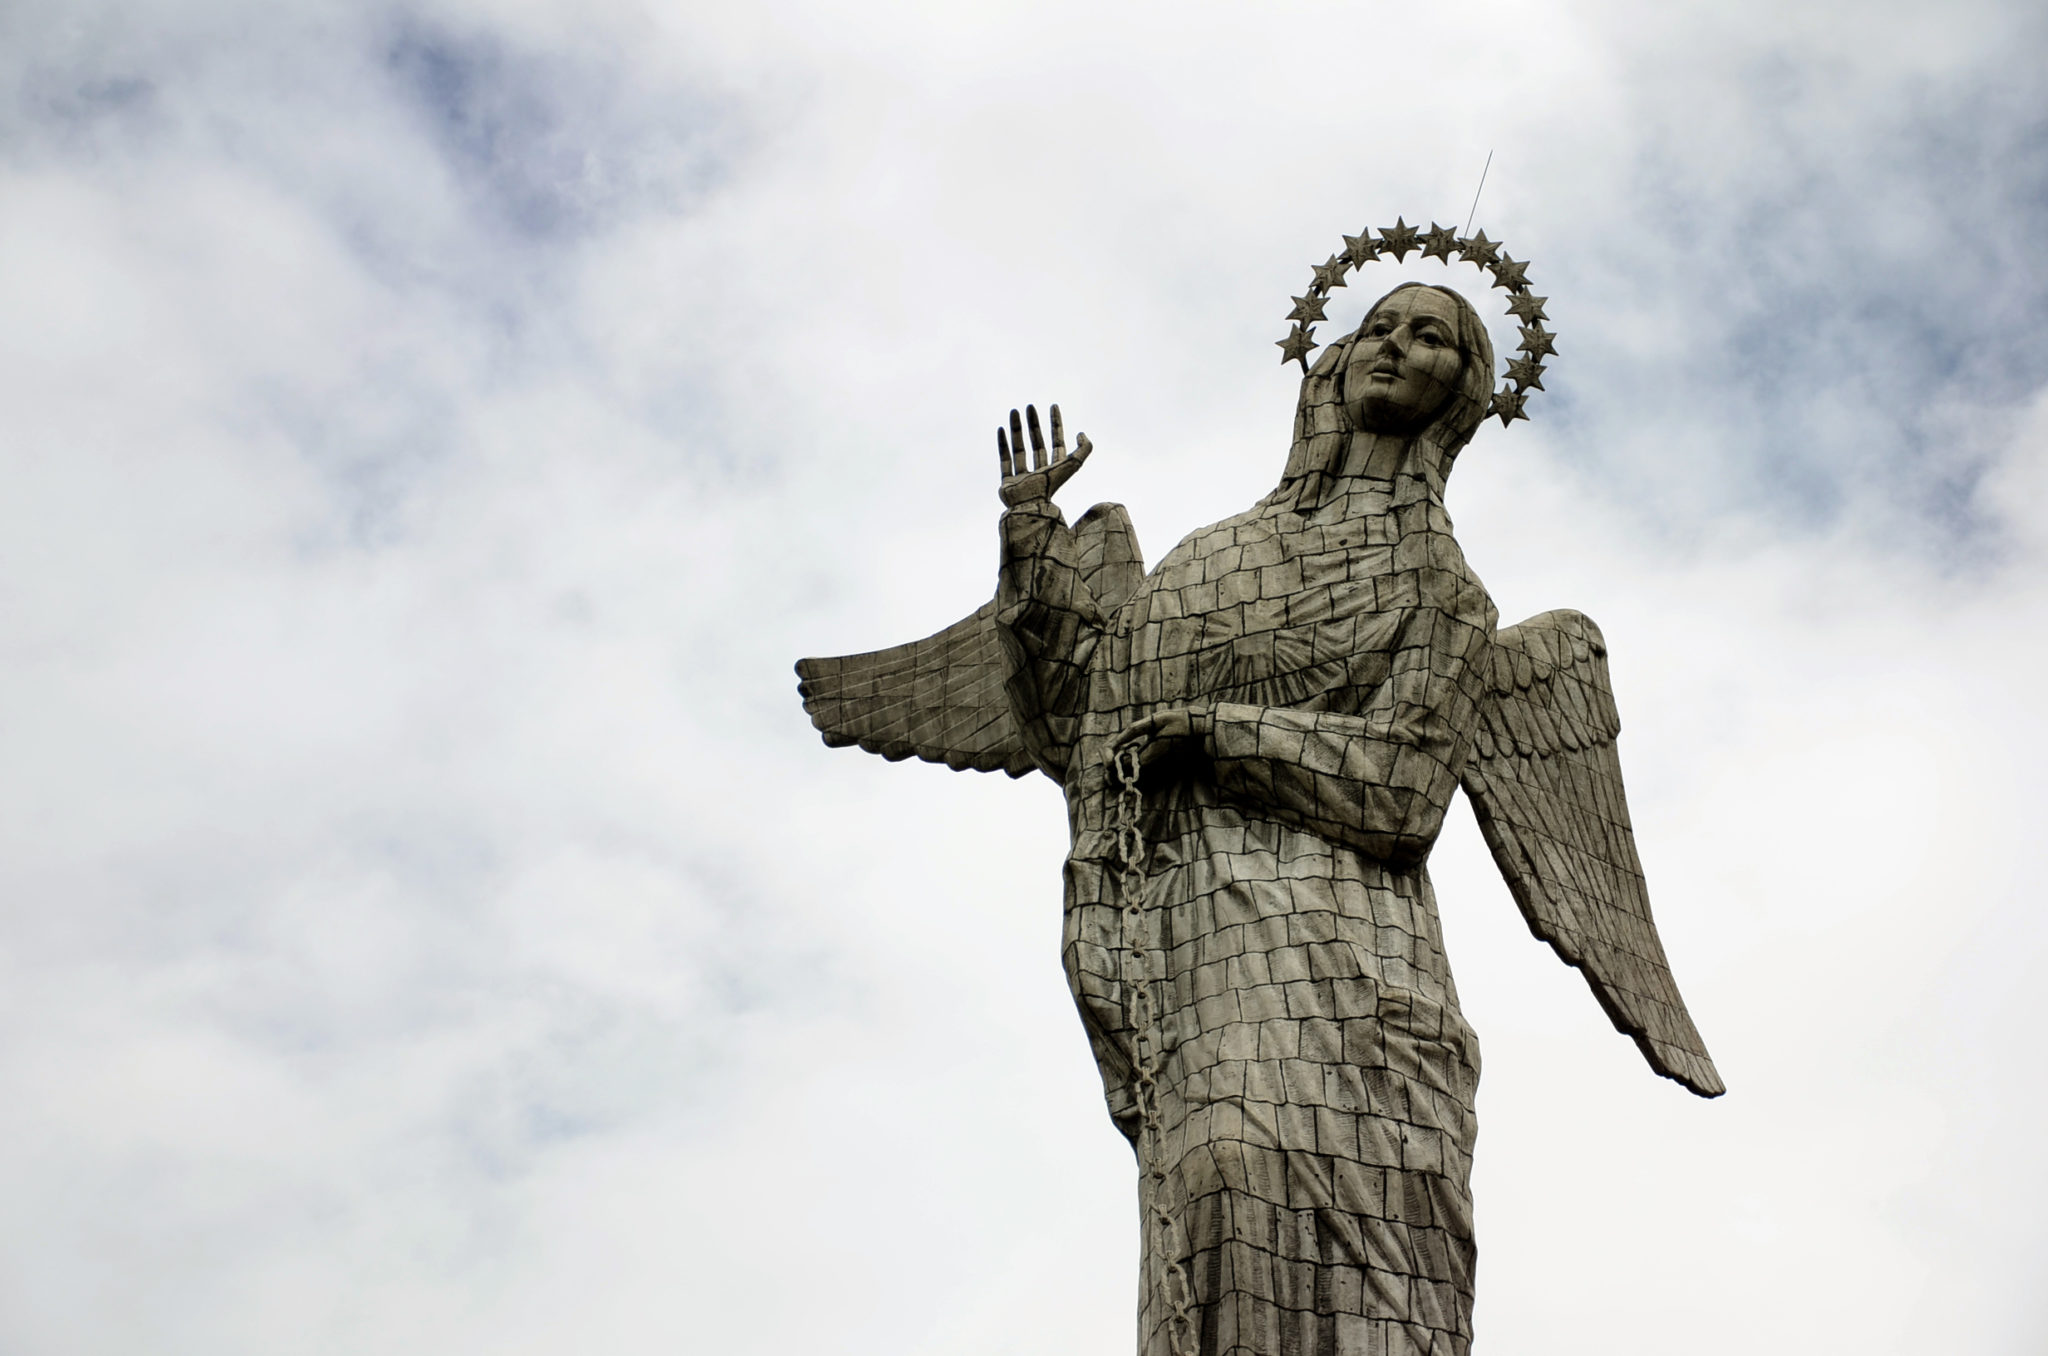 Things-to-see-in-Ecuador-Quito-El-Panecillo-Statue